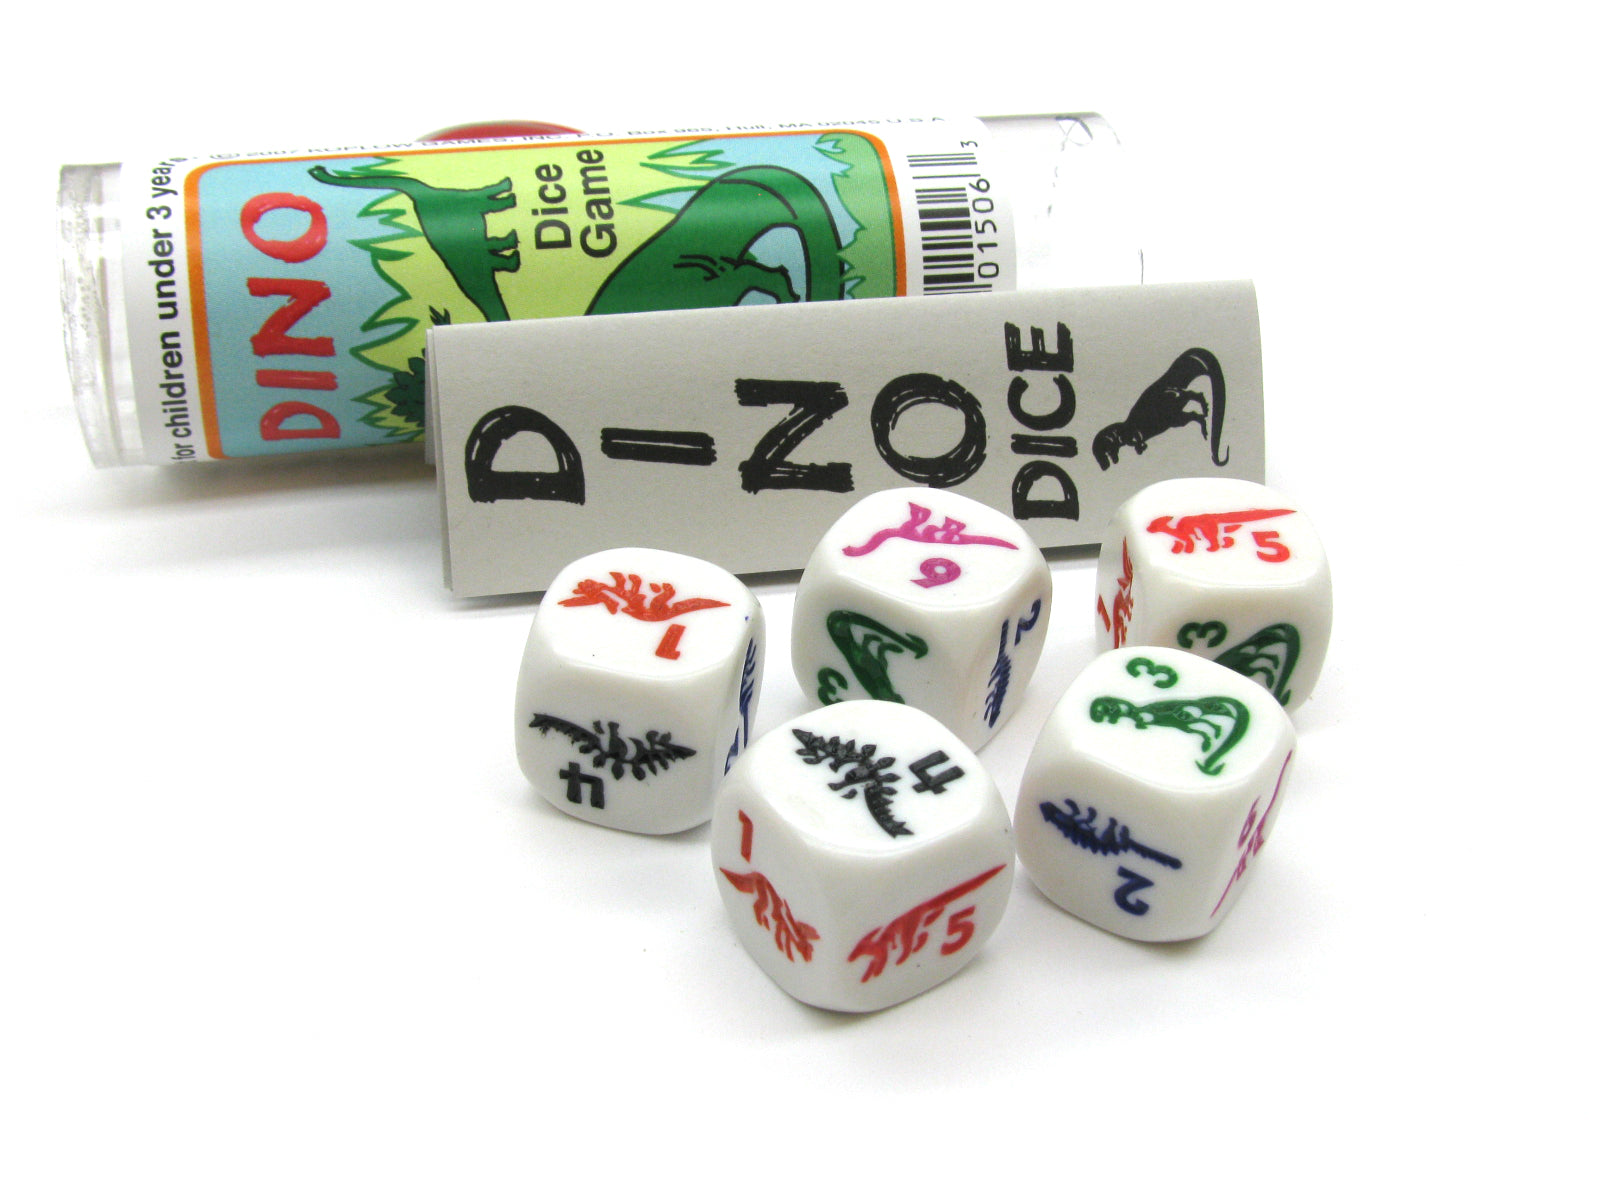 Dino Dice Game 5 Dice Set with Travel Tube and Instructions